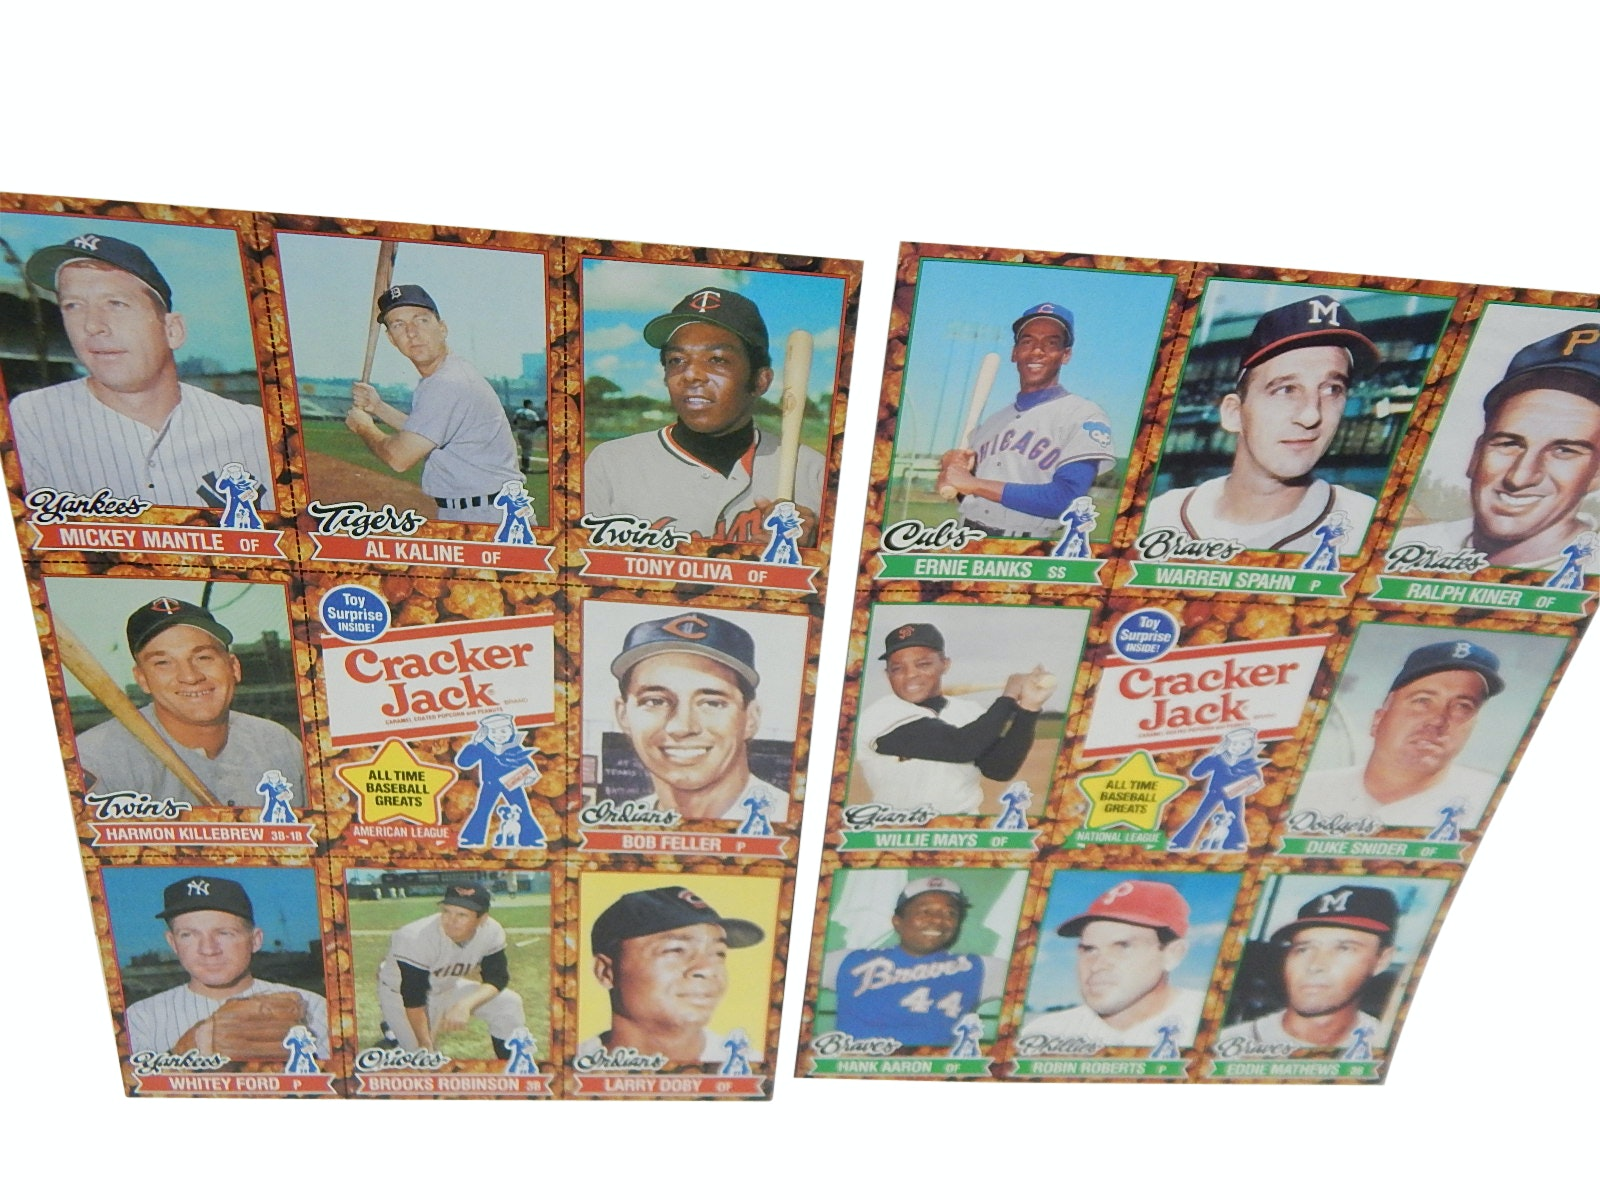 Two 1982 Uncut Cracker Jack Baseball Card Sheets with Mantle, Mays, Spahn, Banks